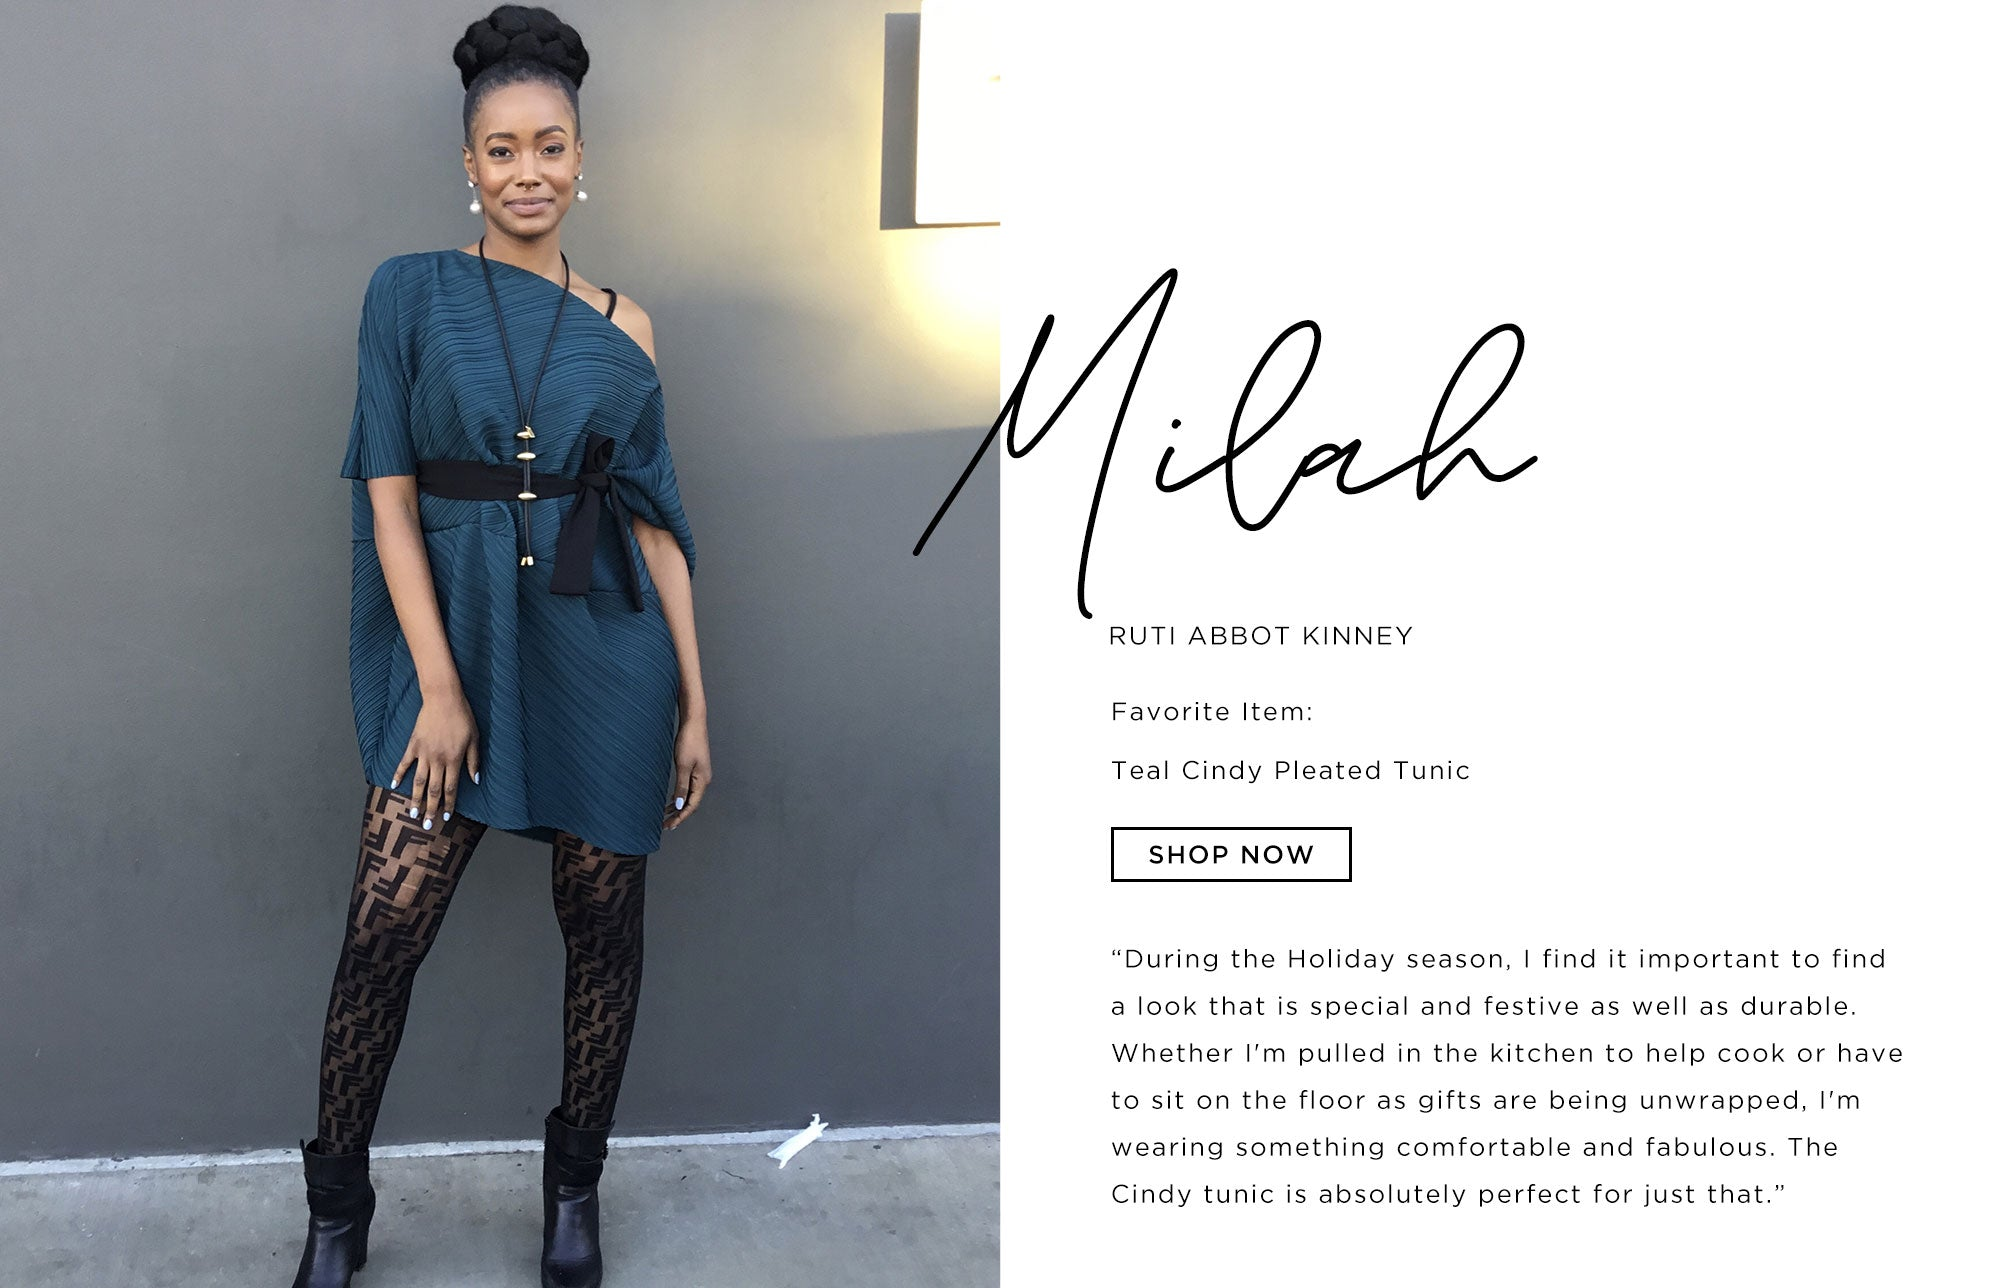 Milah Ruti Abbot Kinney   What you wear is an expression of who you are. During the Holiday season, I find it important to find a look that is special and festive as well as durable. Whether I'm pulled in the kitchen to help cook or have to sit on the floor as gifts are being unwrapped, I'm wearing something comfortable and fabulous. The Cindy tunic is absolutely perfect for just that ;)